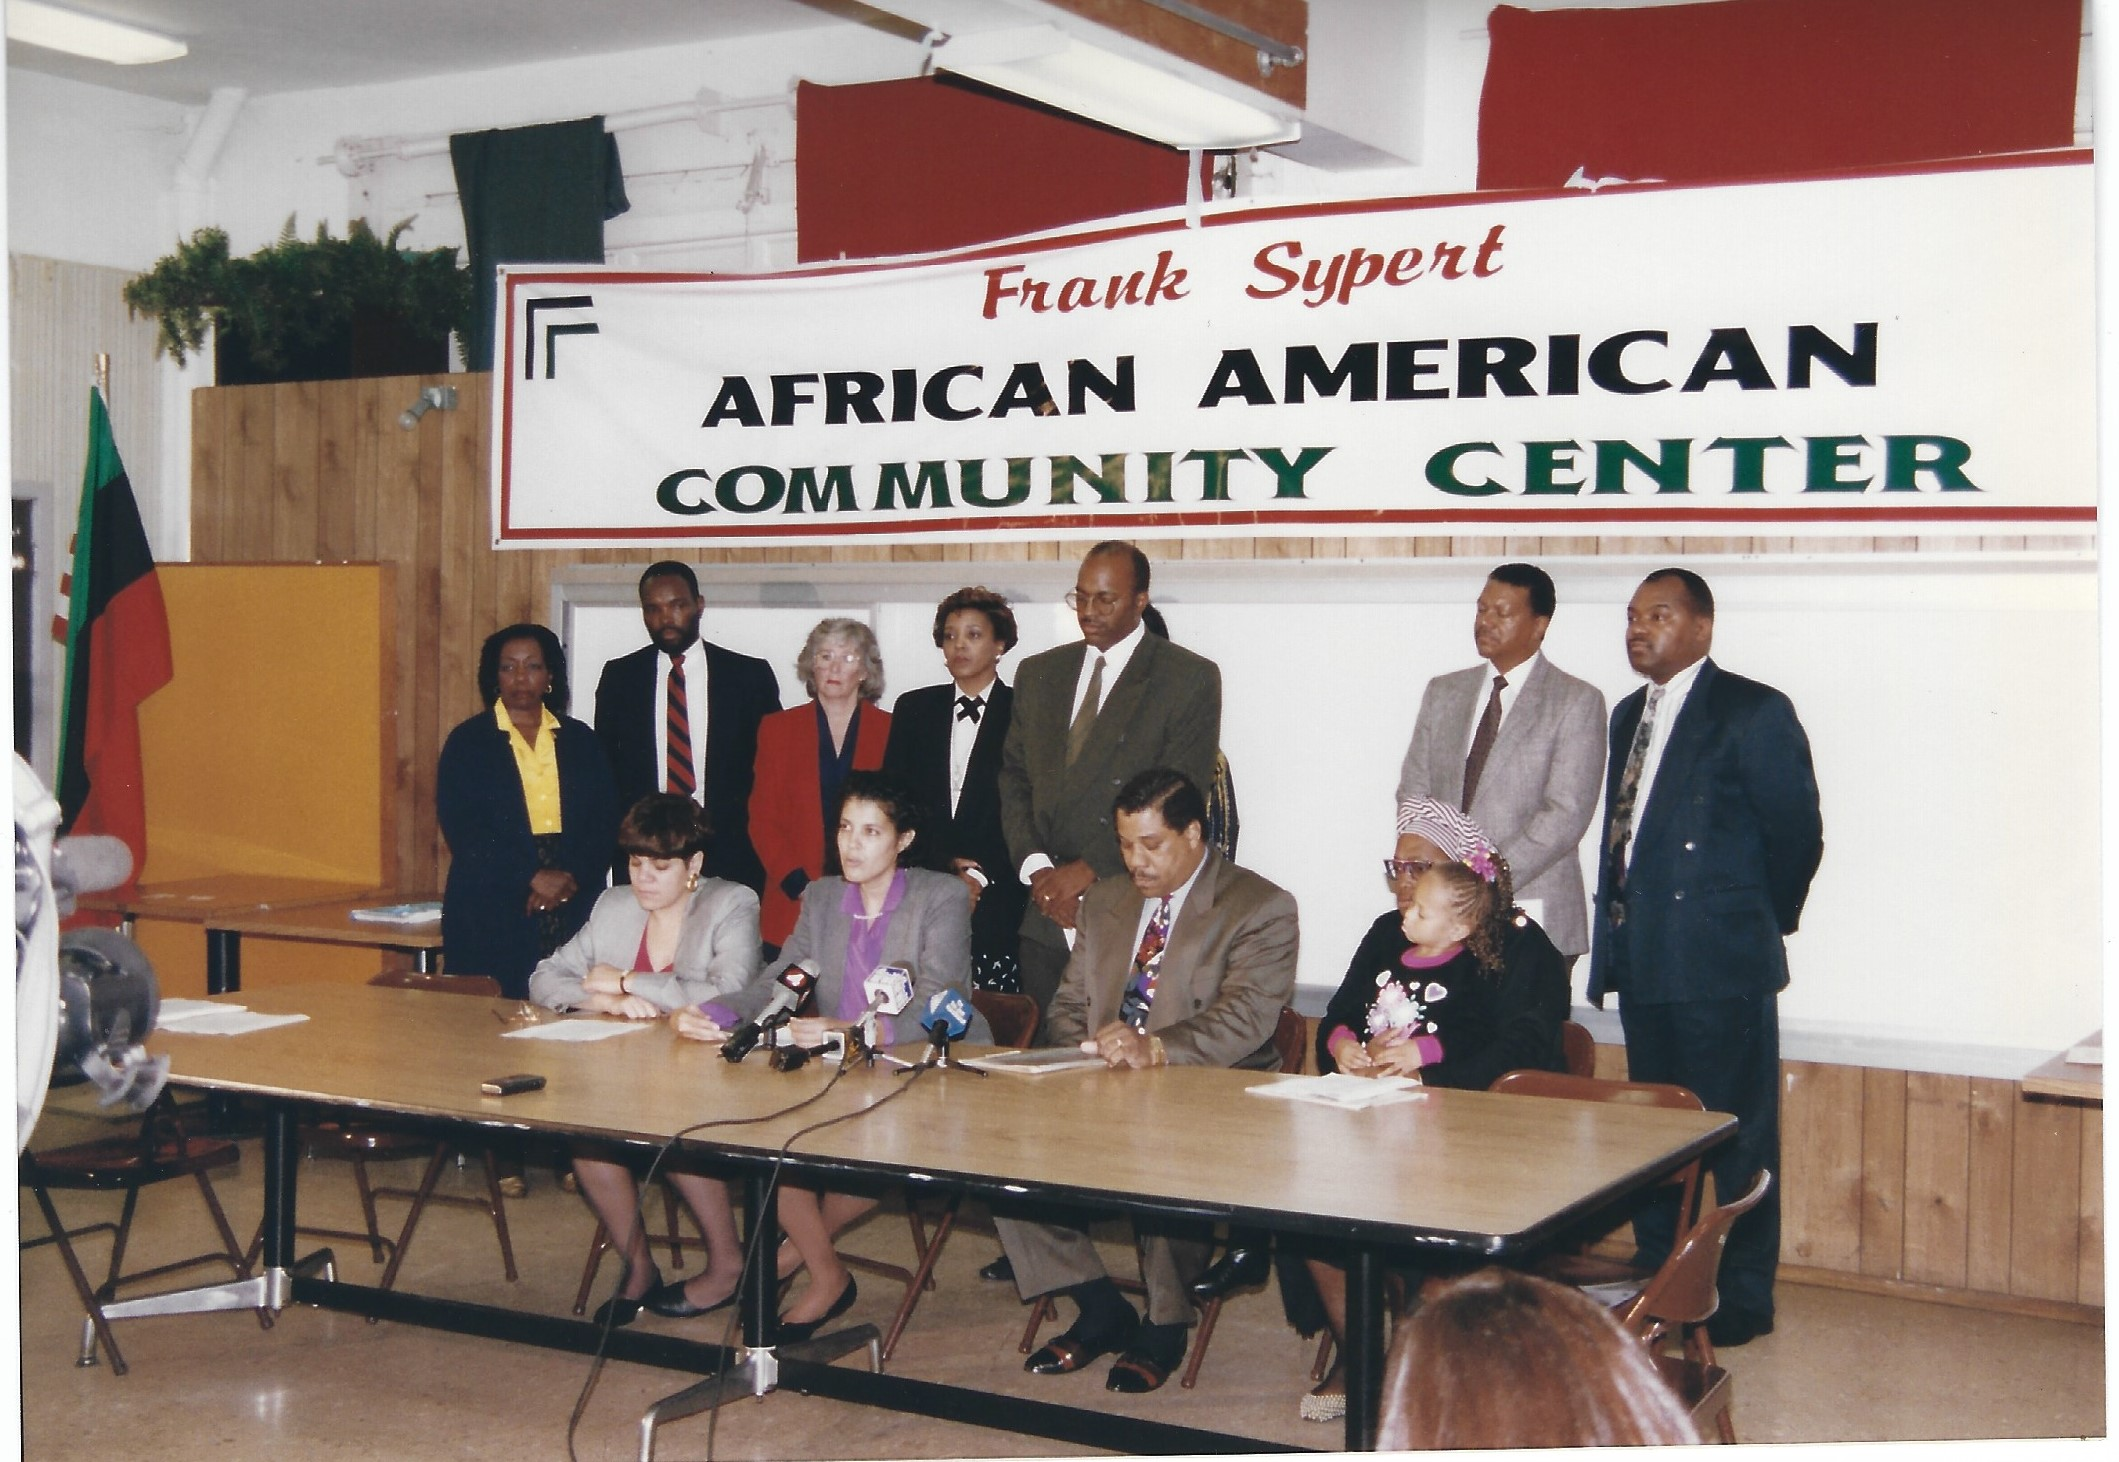 On November 26, 1977, in the upstairs conference room of the Antioch Baptist Church, 268 East Julian Street, San Jose, CA 95112 at 9:00 a.m., twelve individuals gathered to establish the Afro-American Community Service Agency later named Frank Sypert Afro- American Community Service Agency. We, the African-American Community, thank you for planting the seed and we the African American Community will nurture the seed so that it will continue to grow.  In 1978, the African American Community Service Agency (AACSA) was grated official status.